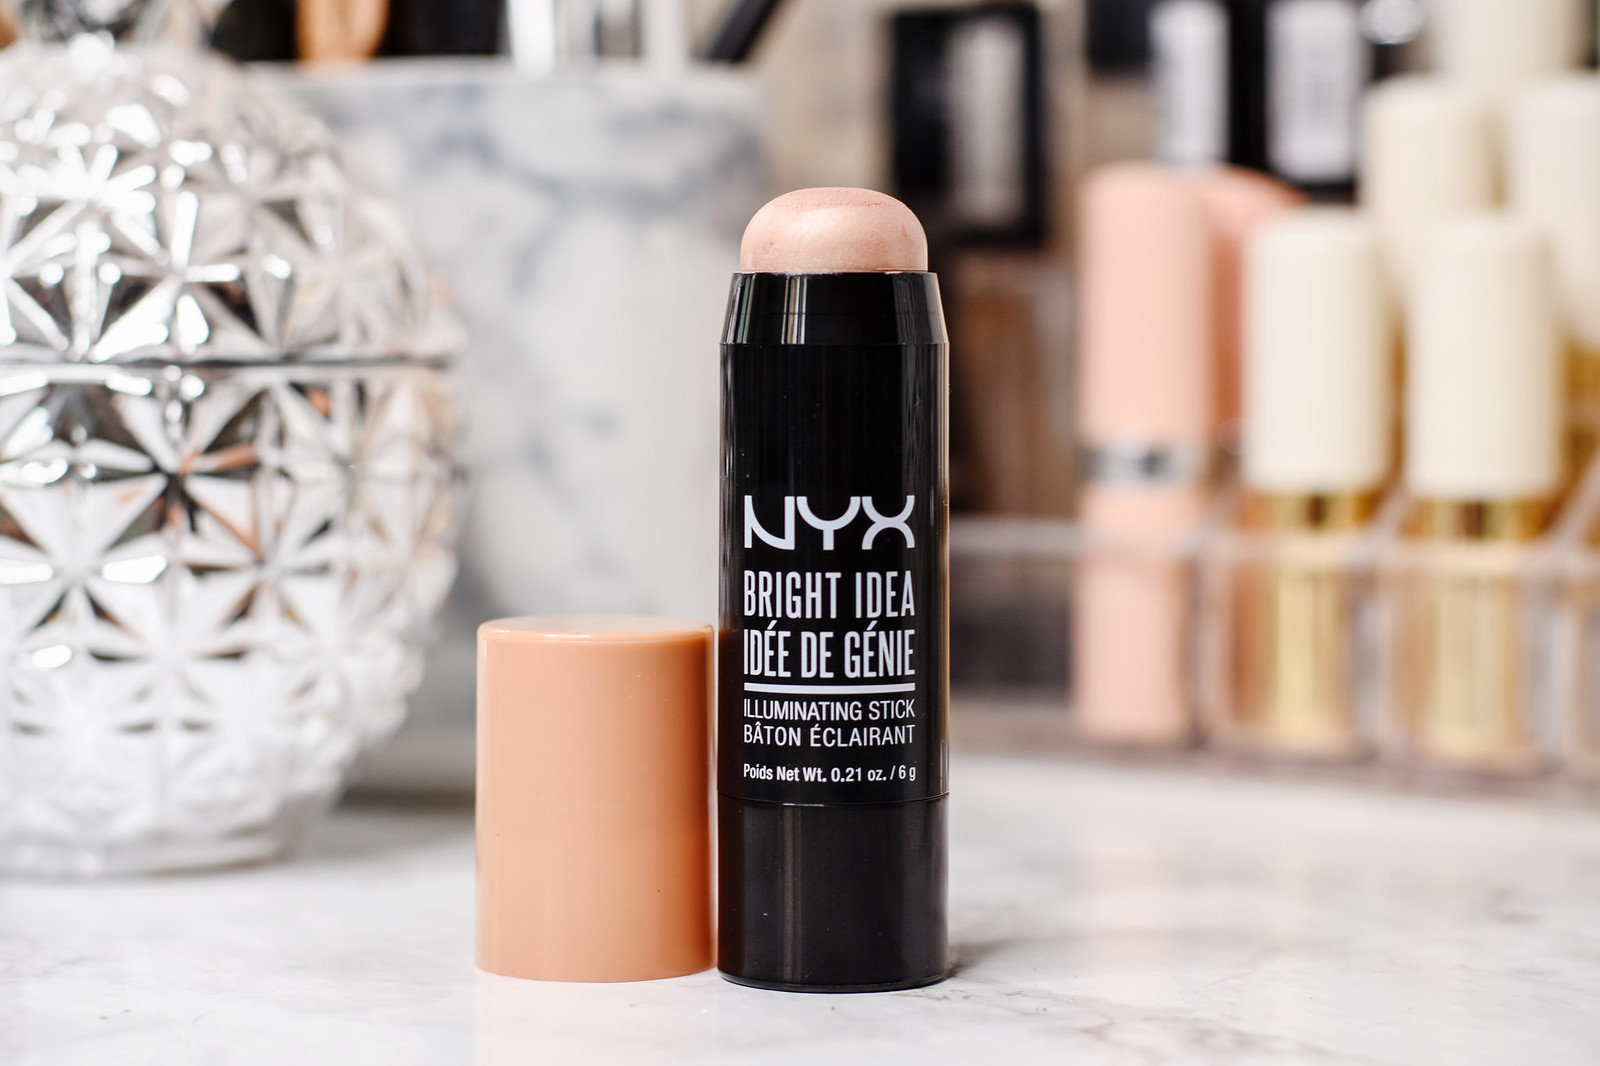 NYX Bright Idea Illuminating Stick in shade Chardonnay Shimmer review